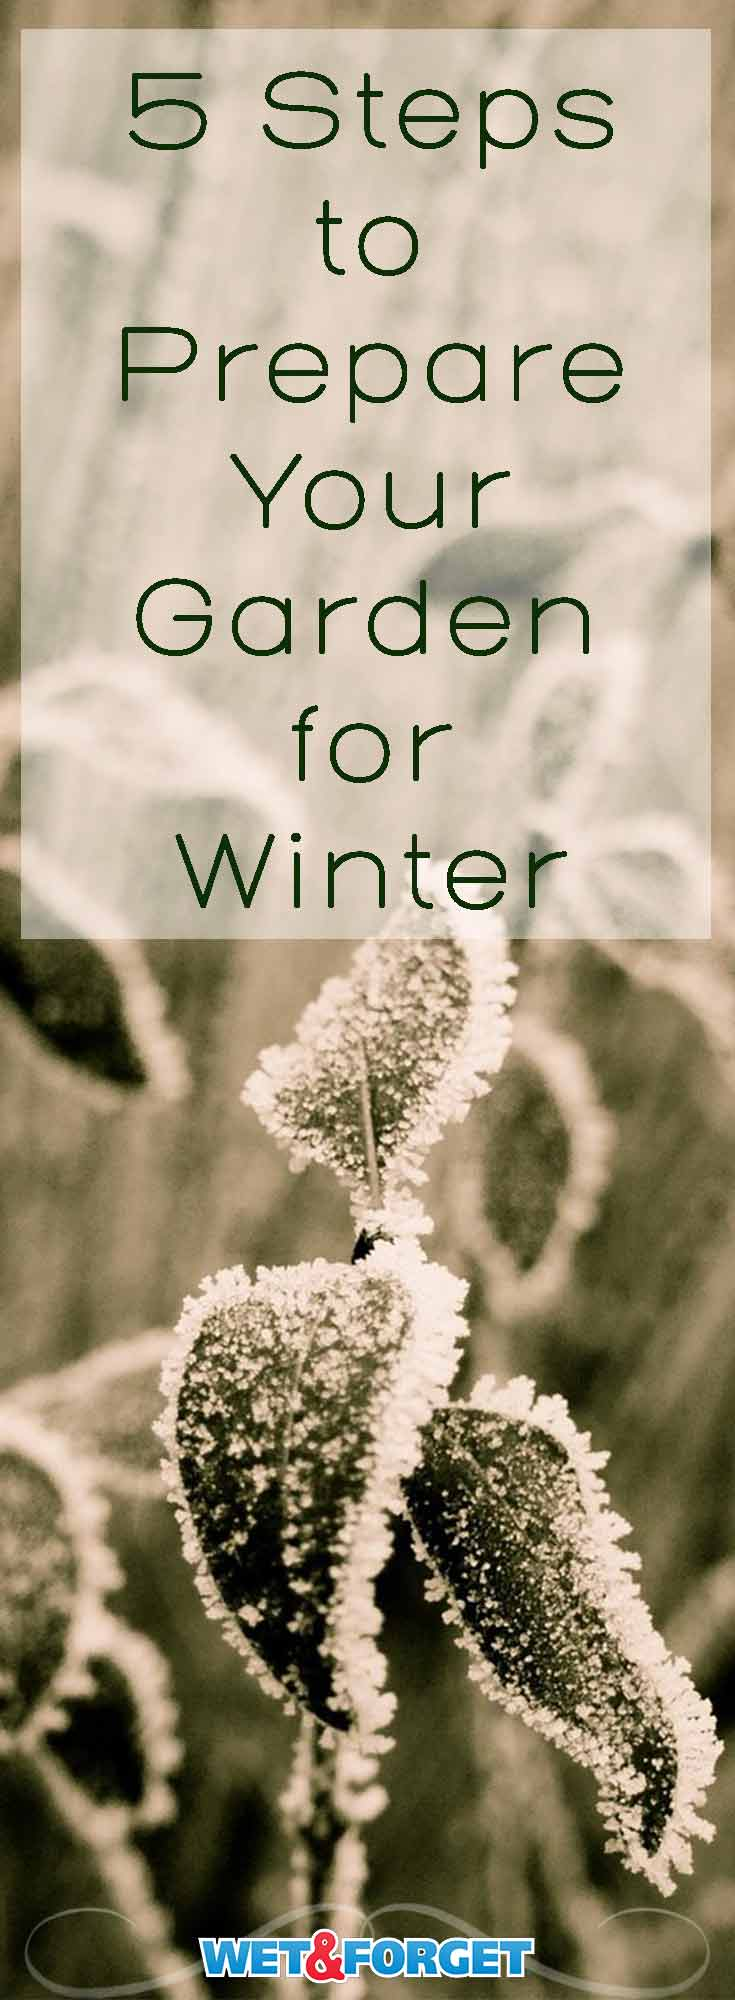 The winter weather is slowly starting to roll in. Make sure your garden is prepared for the temperature change and snow with these our easy guide.